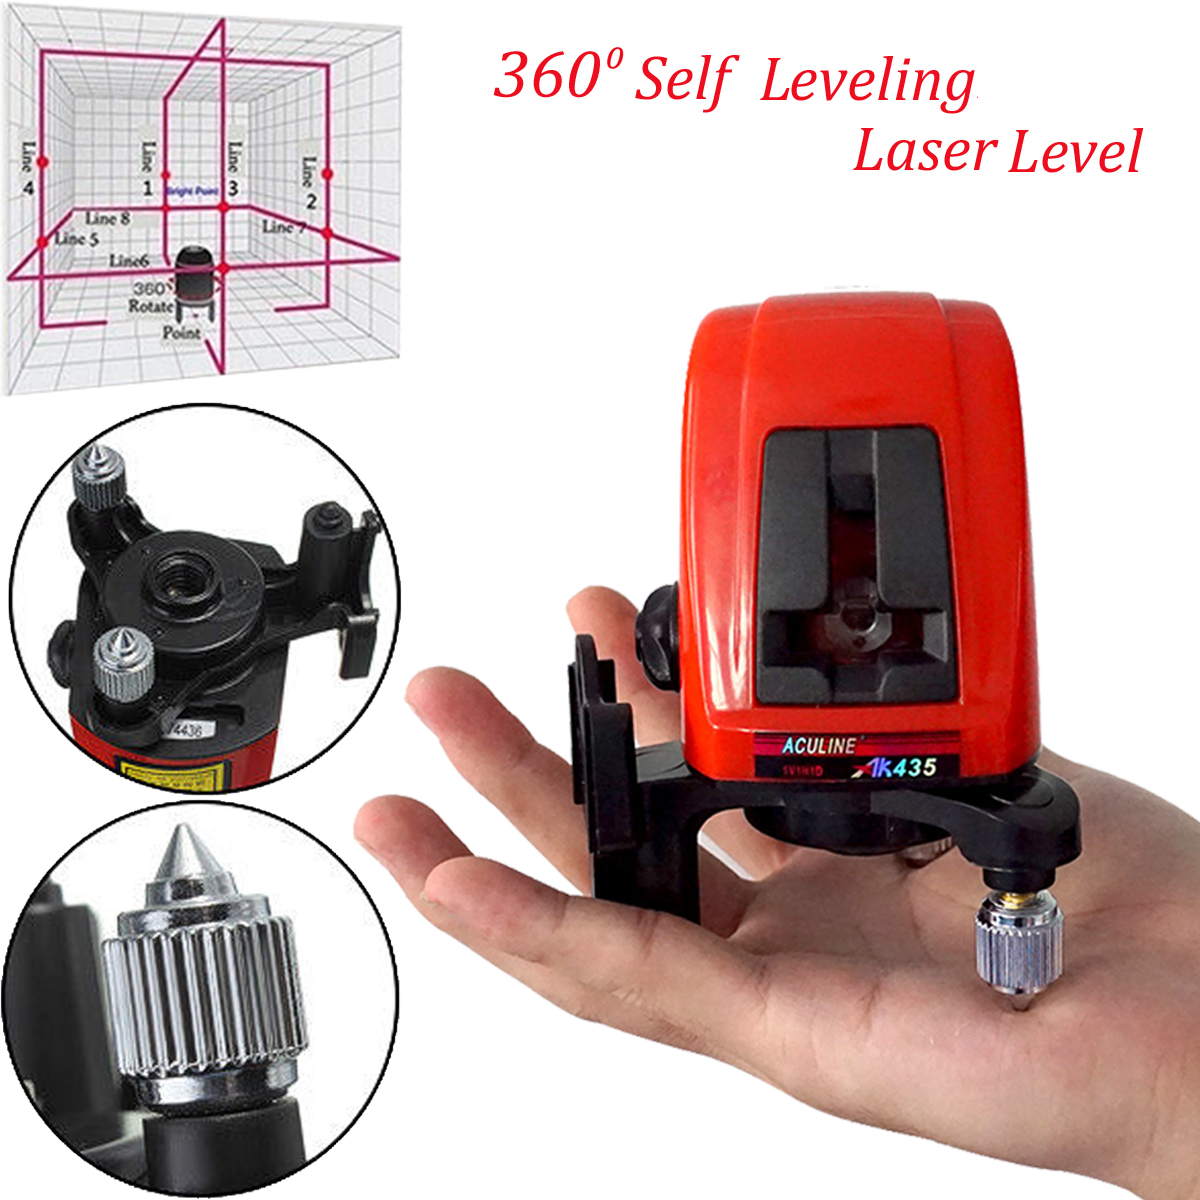 AK435 360 Degree Self-leveling Cross Laser Level Red 2 Line 1 Point With